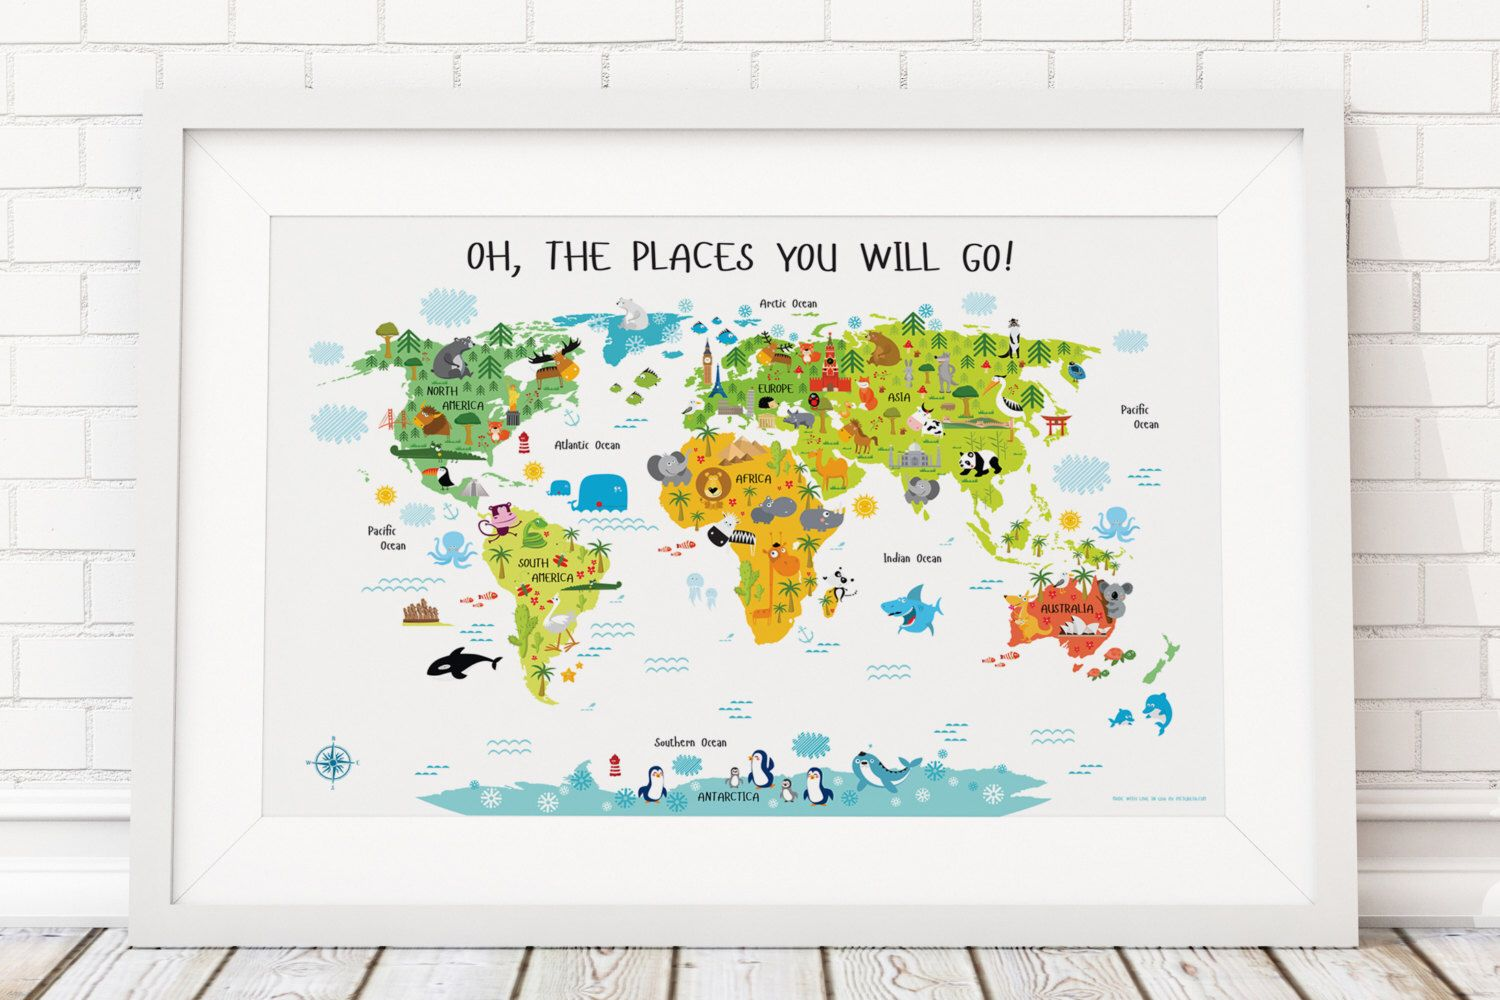 Childrens world map poster unique baby gifts first birthday gift childrens world map unique baby gifts nursery world map nursery decor baby gift kids gifts world map poster oh the places youll go by pictureta on gumiabroncs Images